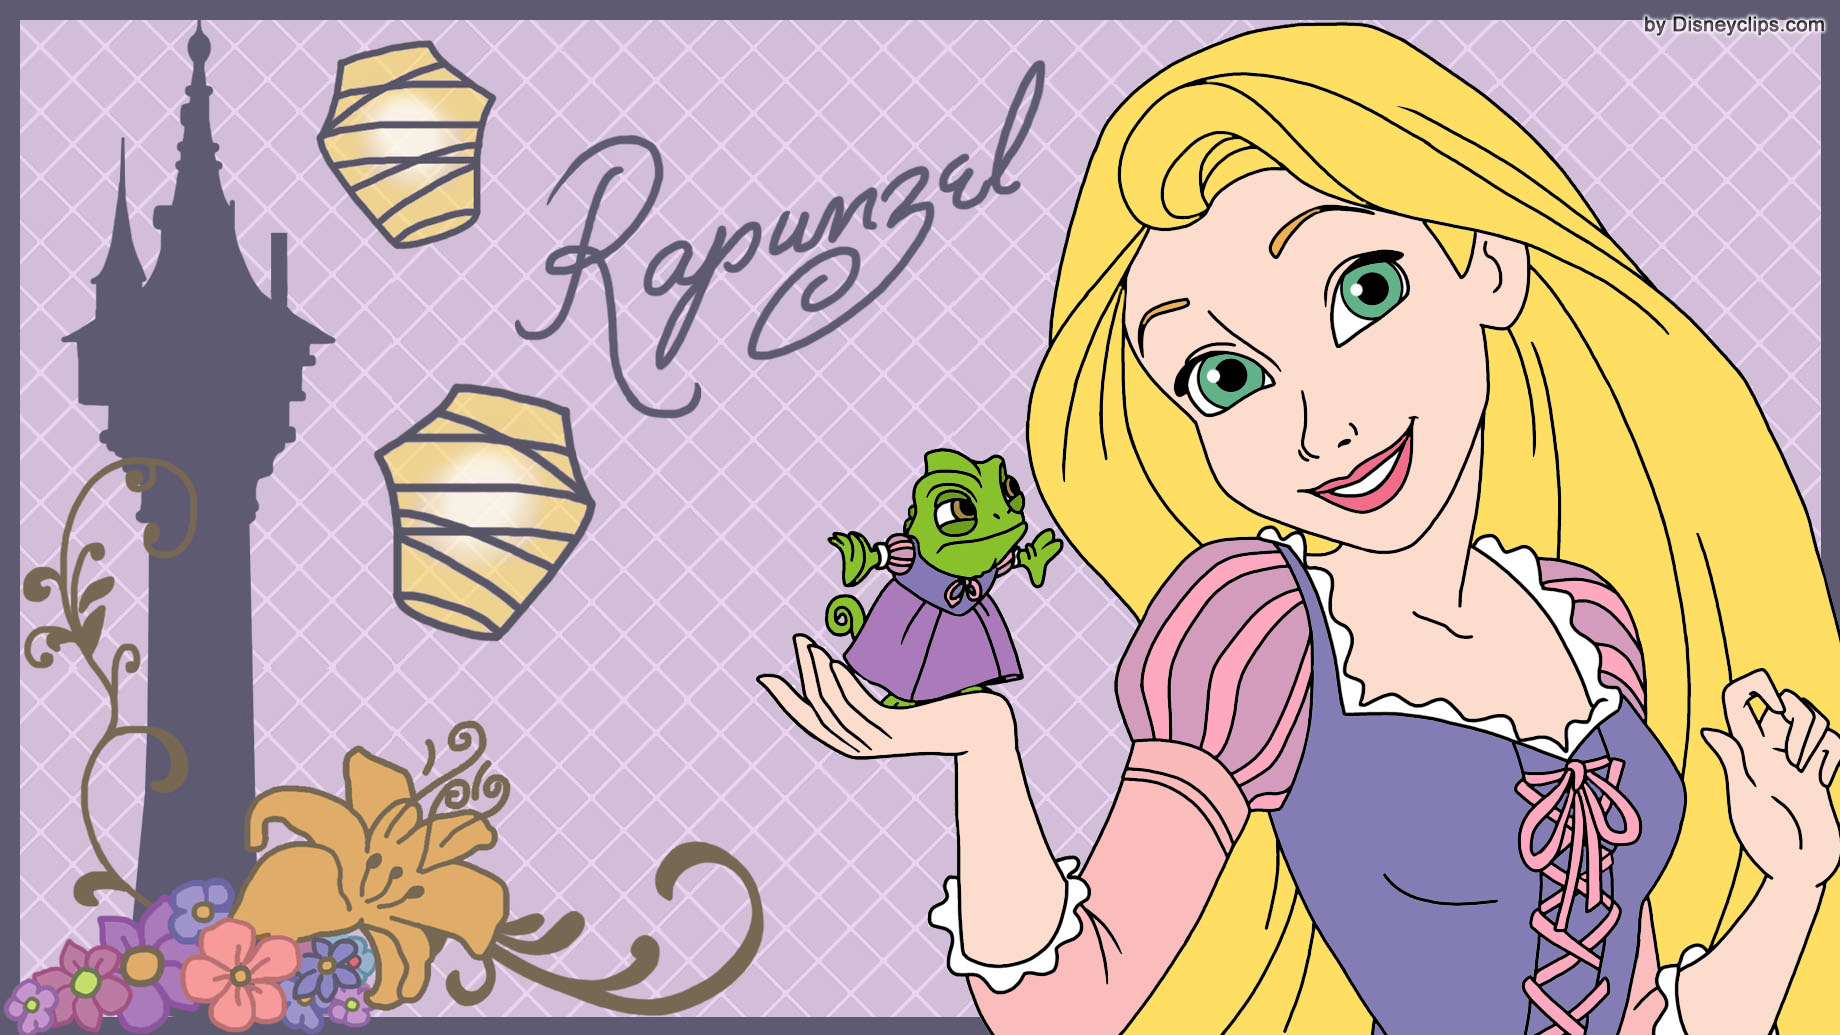 Tangled Rapunzel And Pascal Wallpaper Disneyclips Com